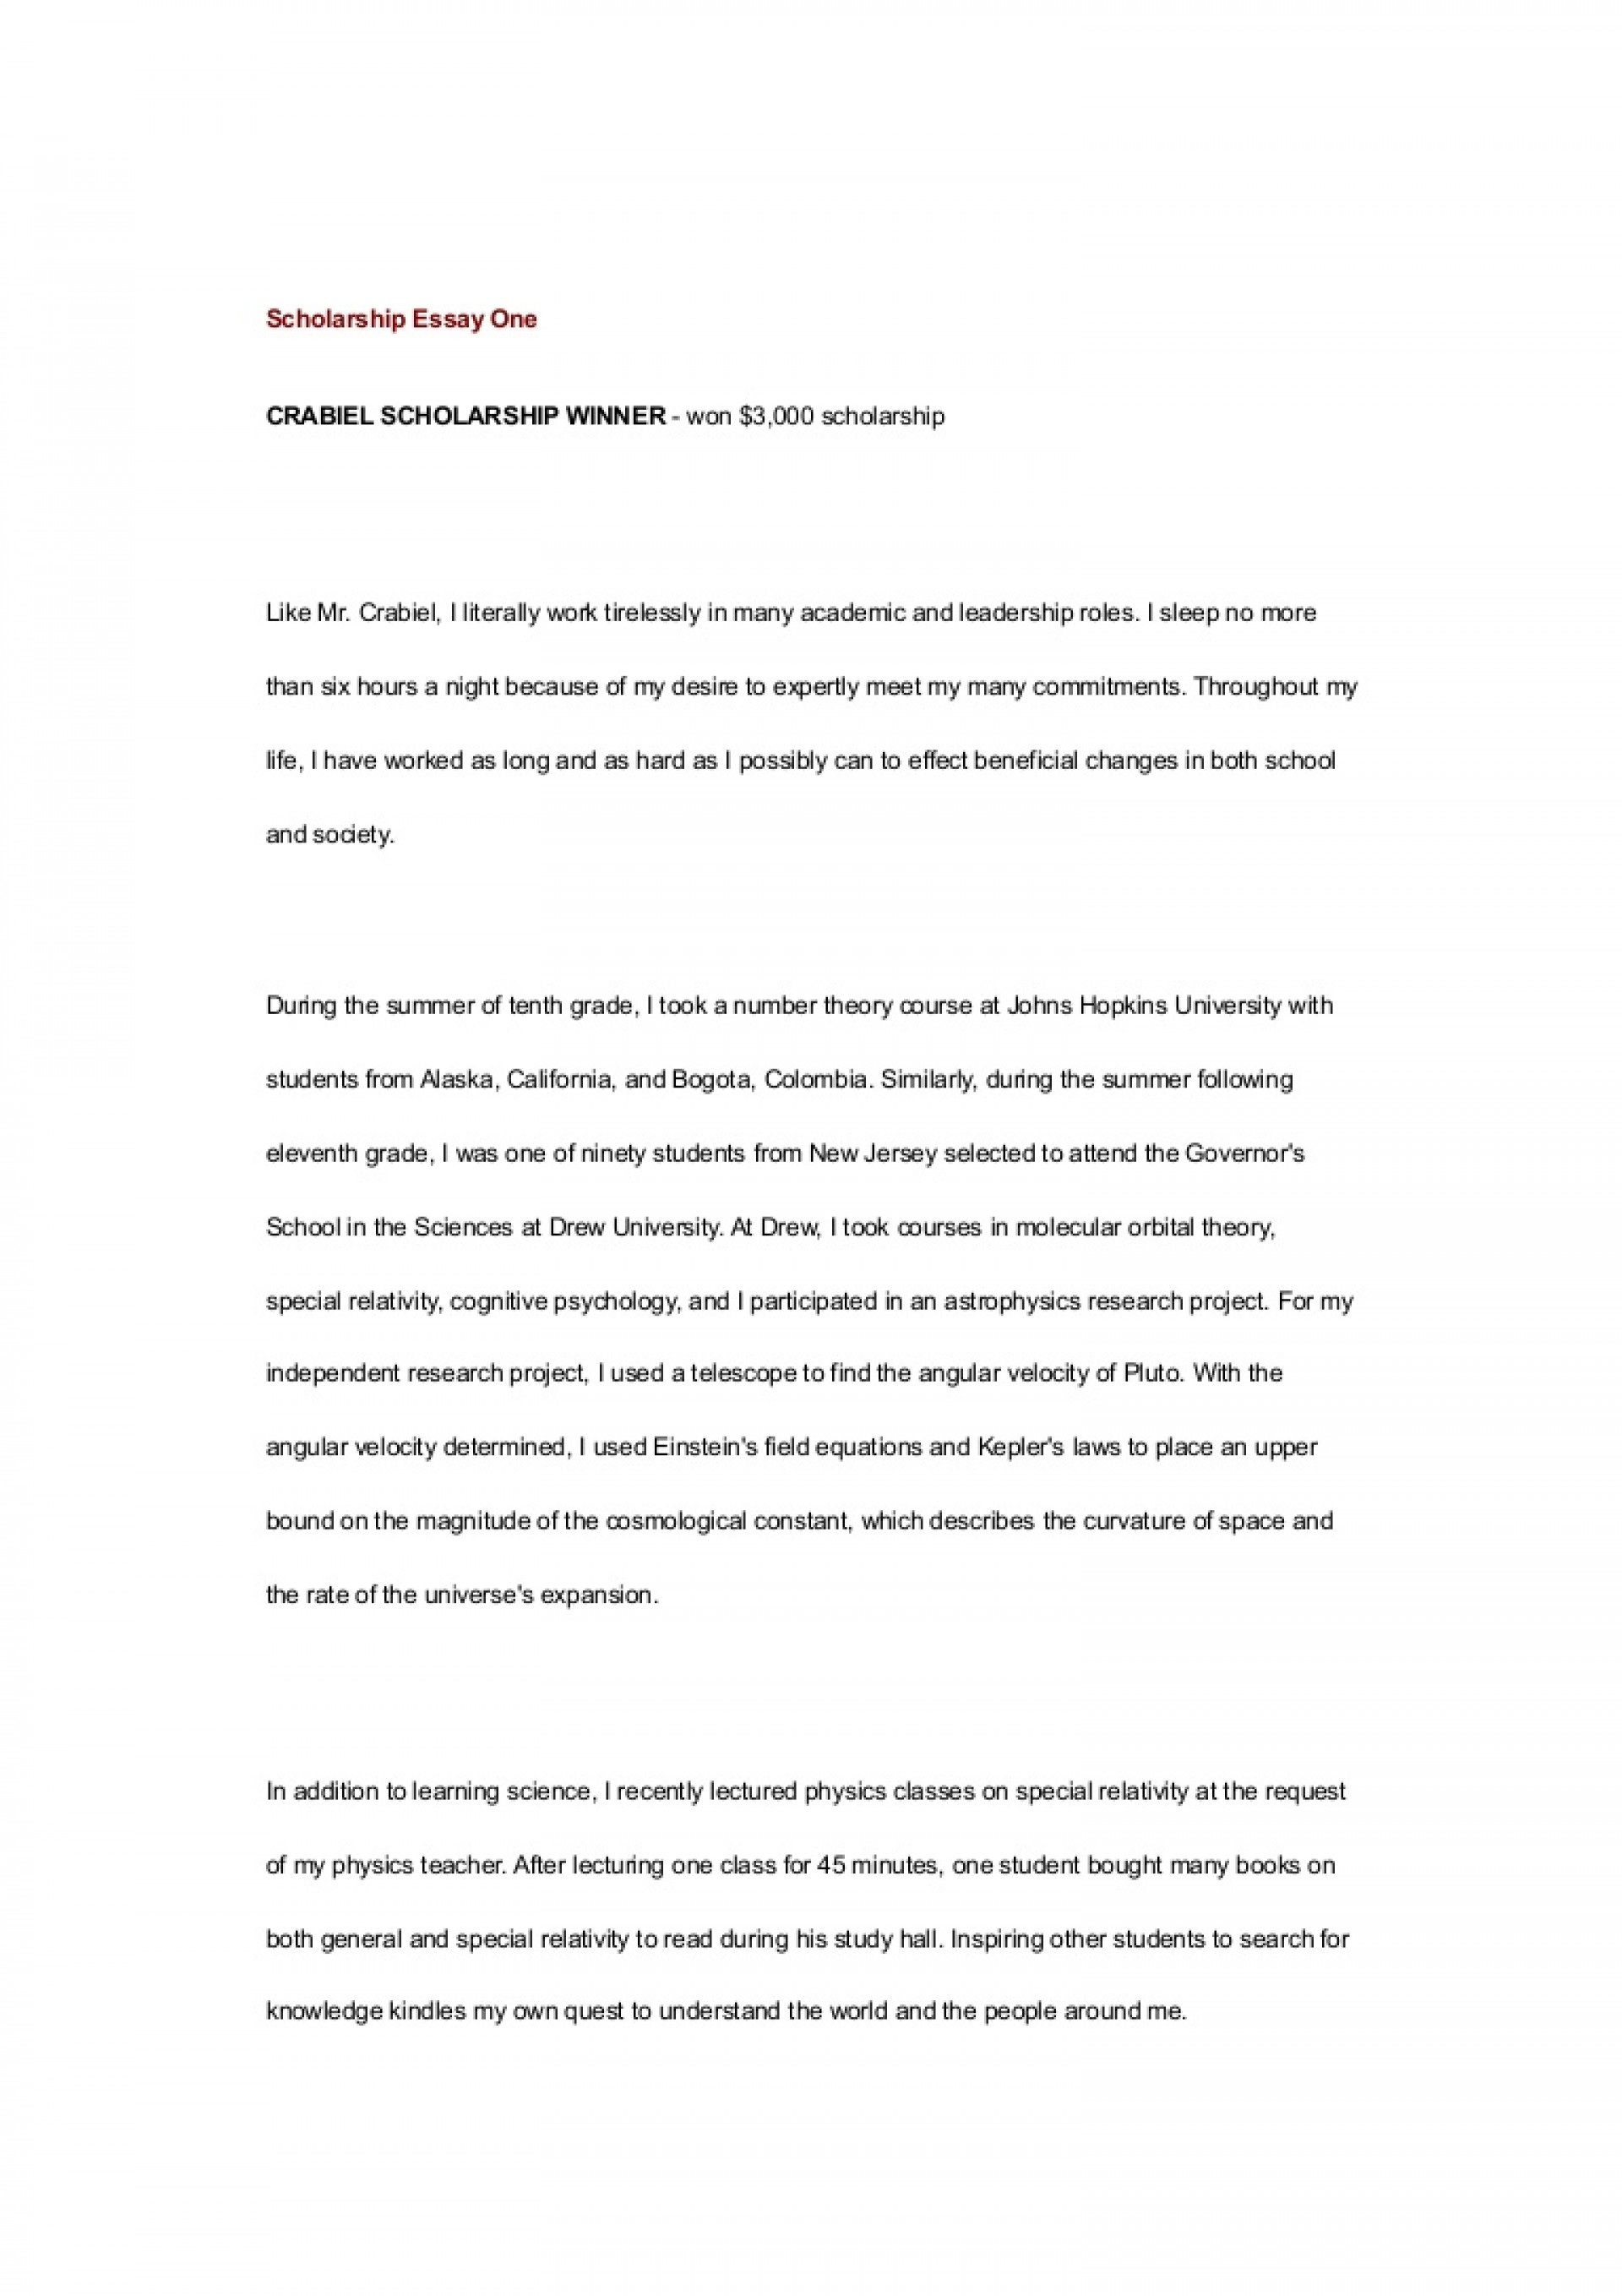 005 Scholarshipessayone Phpapp01 Thumbnail Essay Example Mega Unusual Essays Free Account Refund 1920